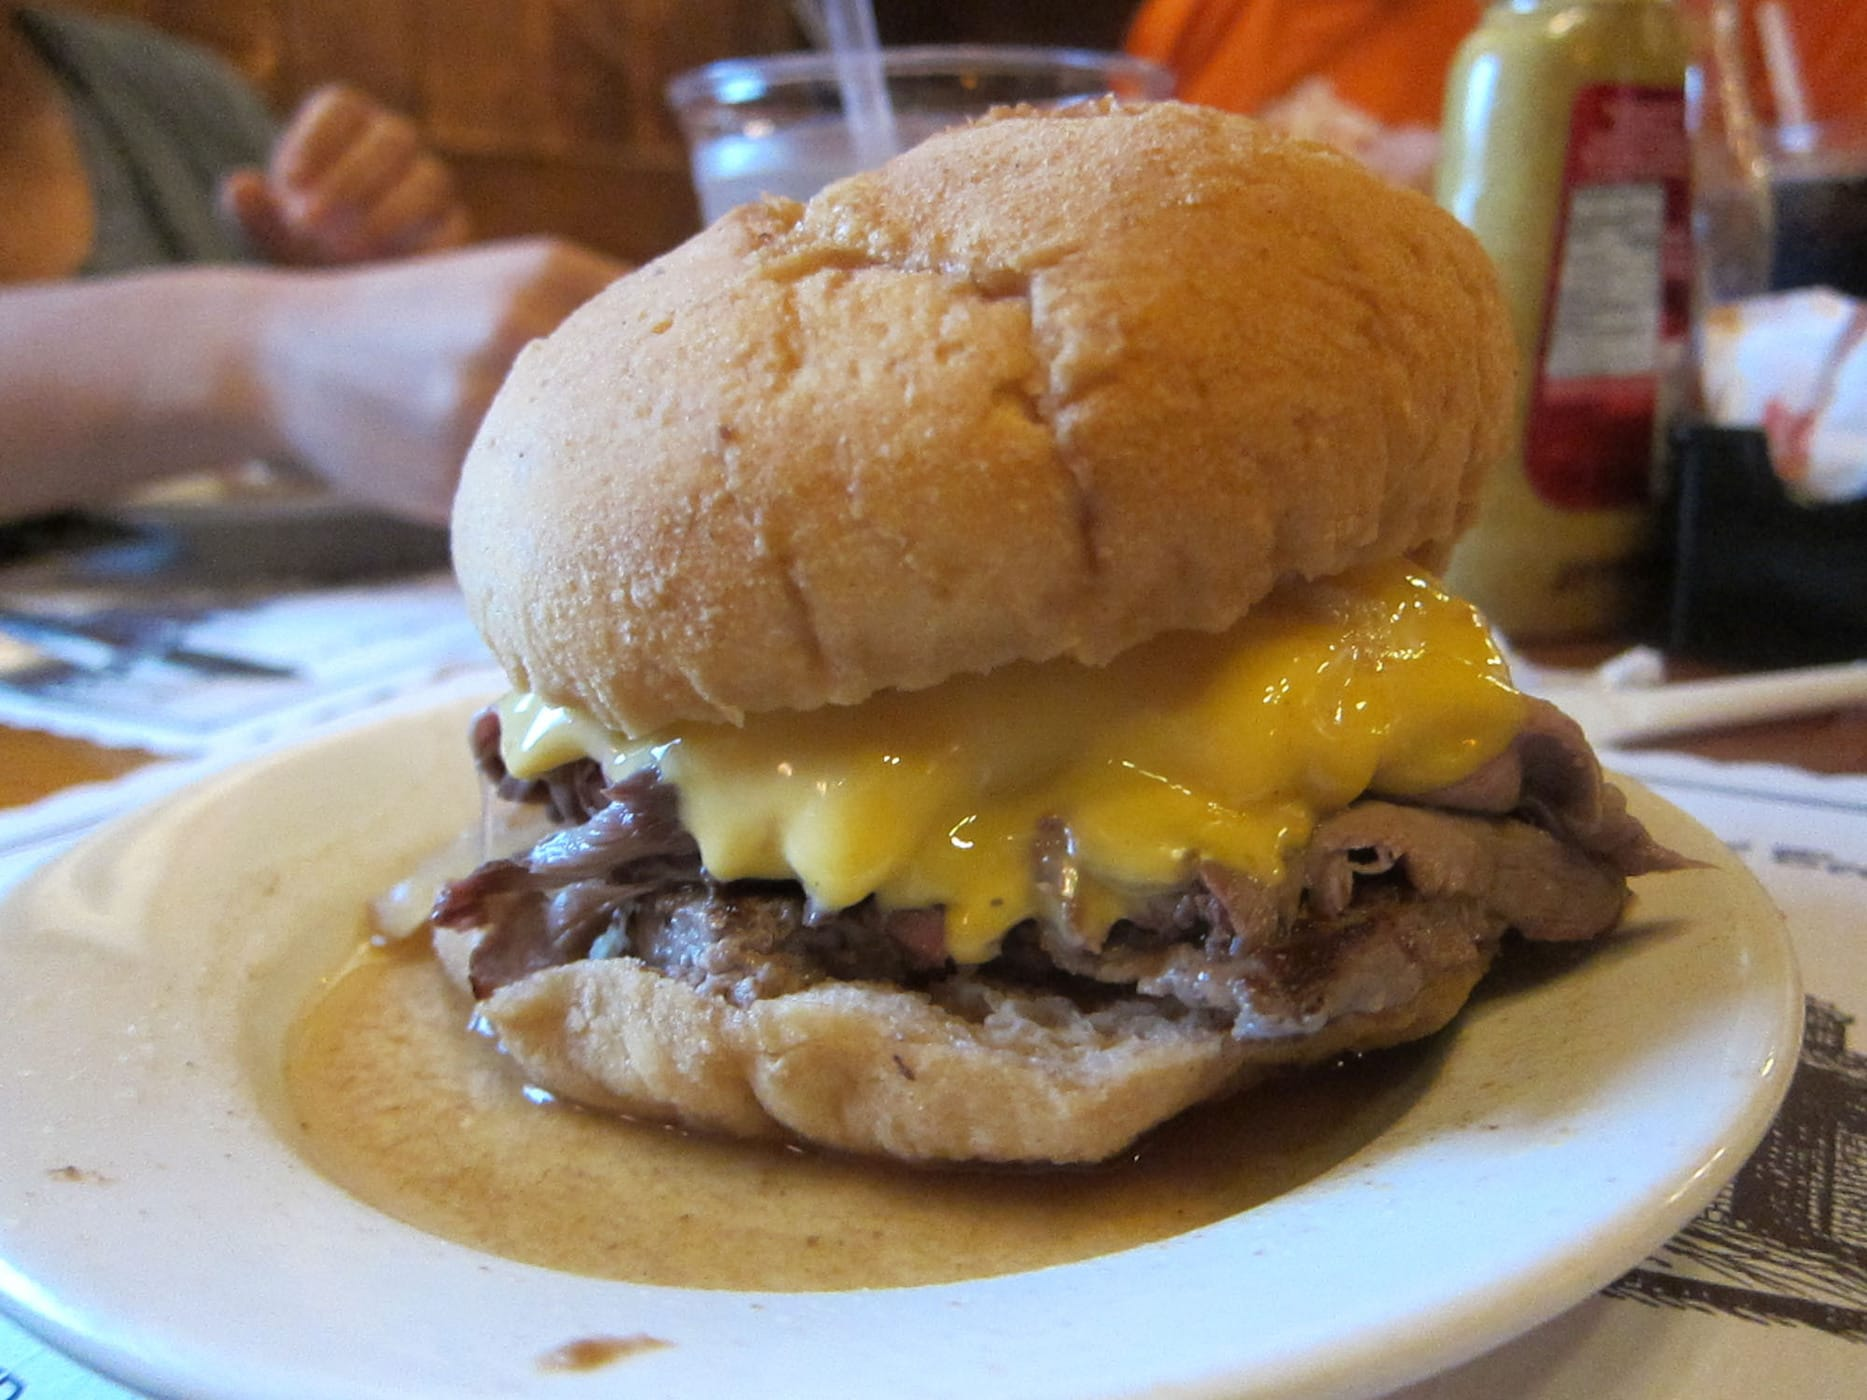 Gargiulo Burger at Brennan and Carr, as seen on Man vs. Food: a hamburger topped with roast beef.